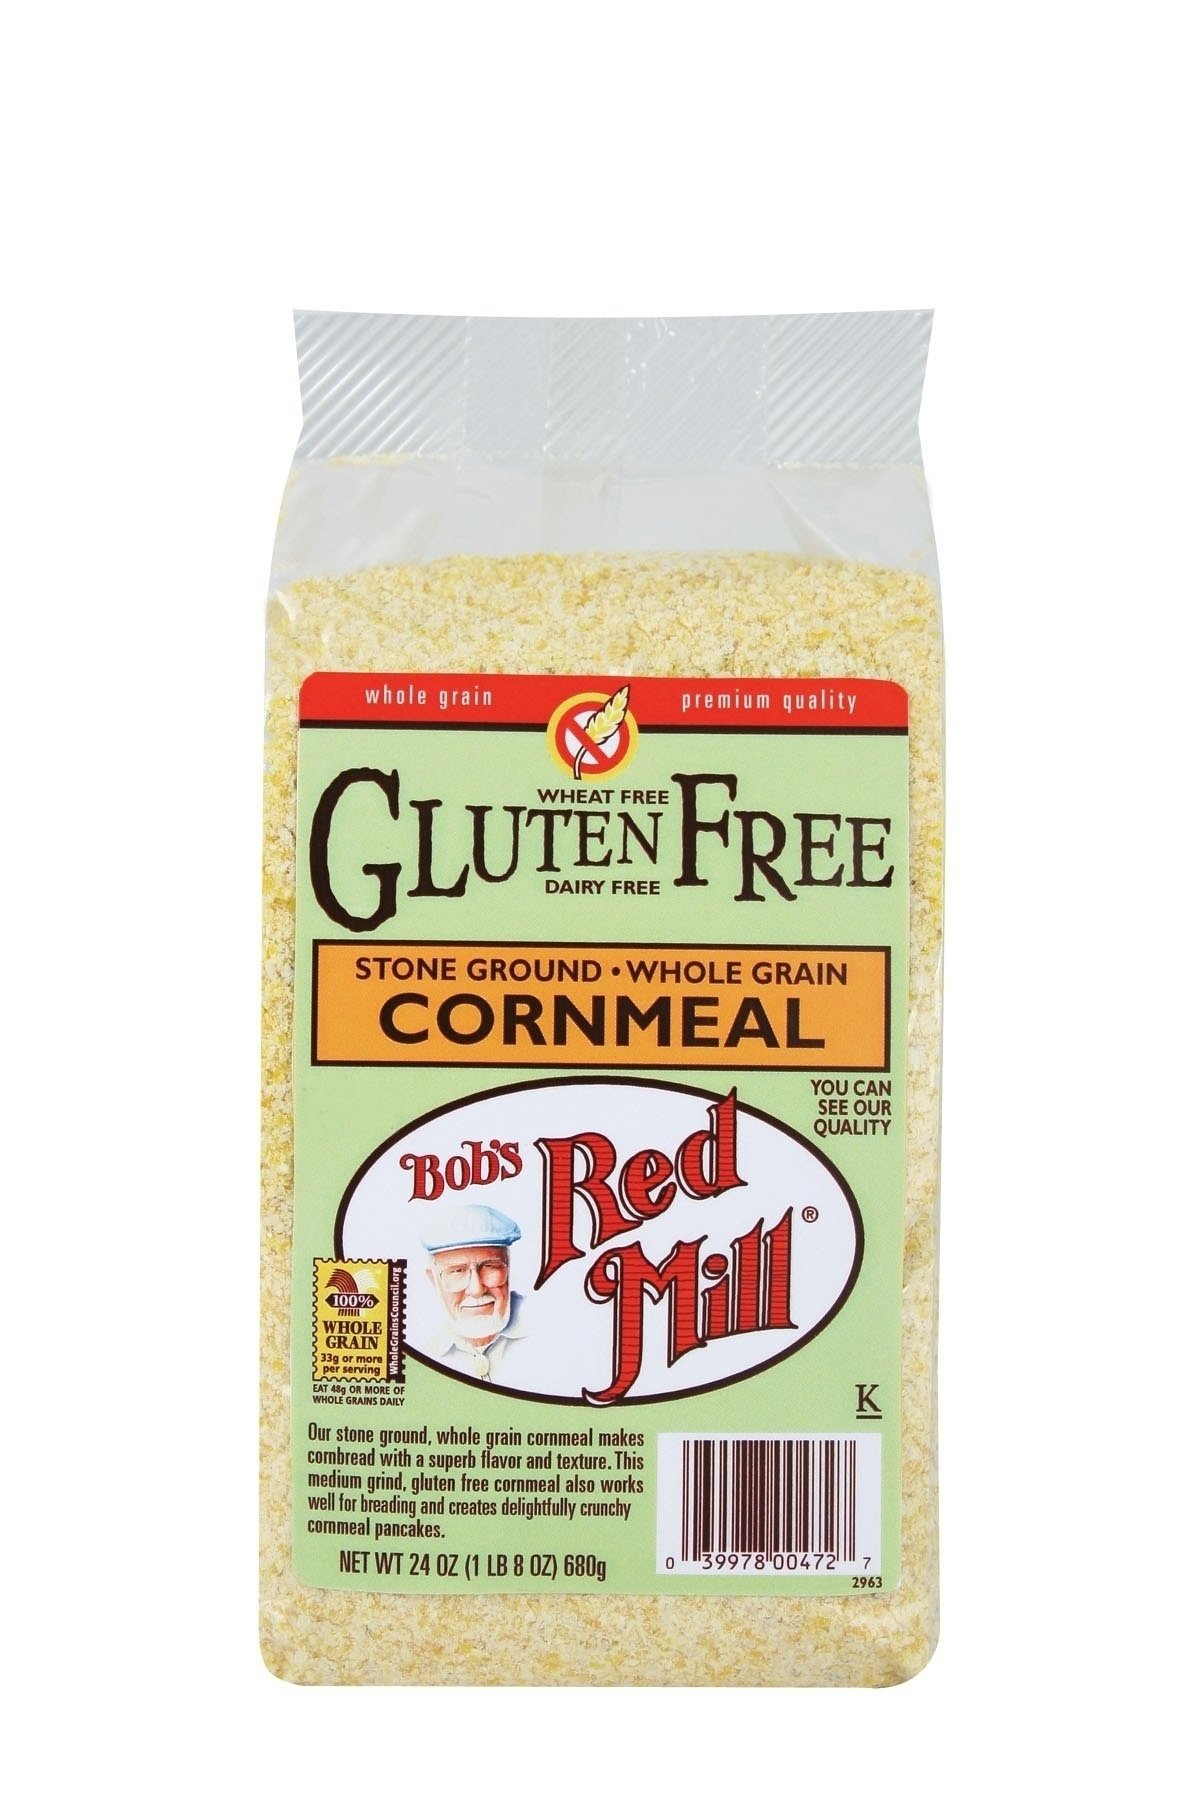 Bob's Red Mill Gluten Free Cornmeal, 24-ounce (Pack of 4) by Bob's Red Mill